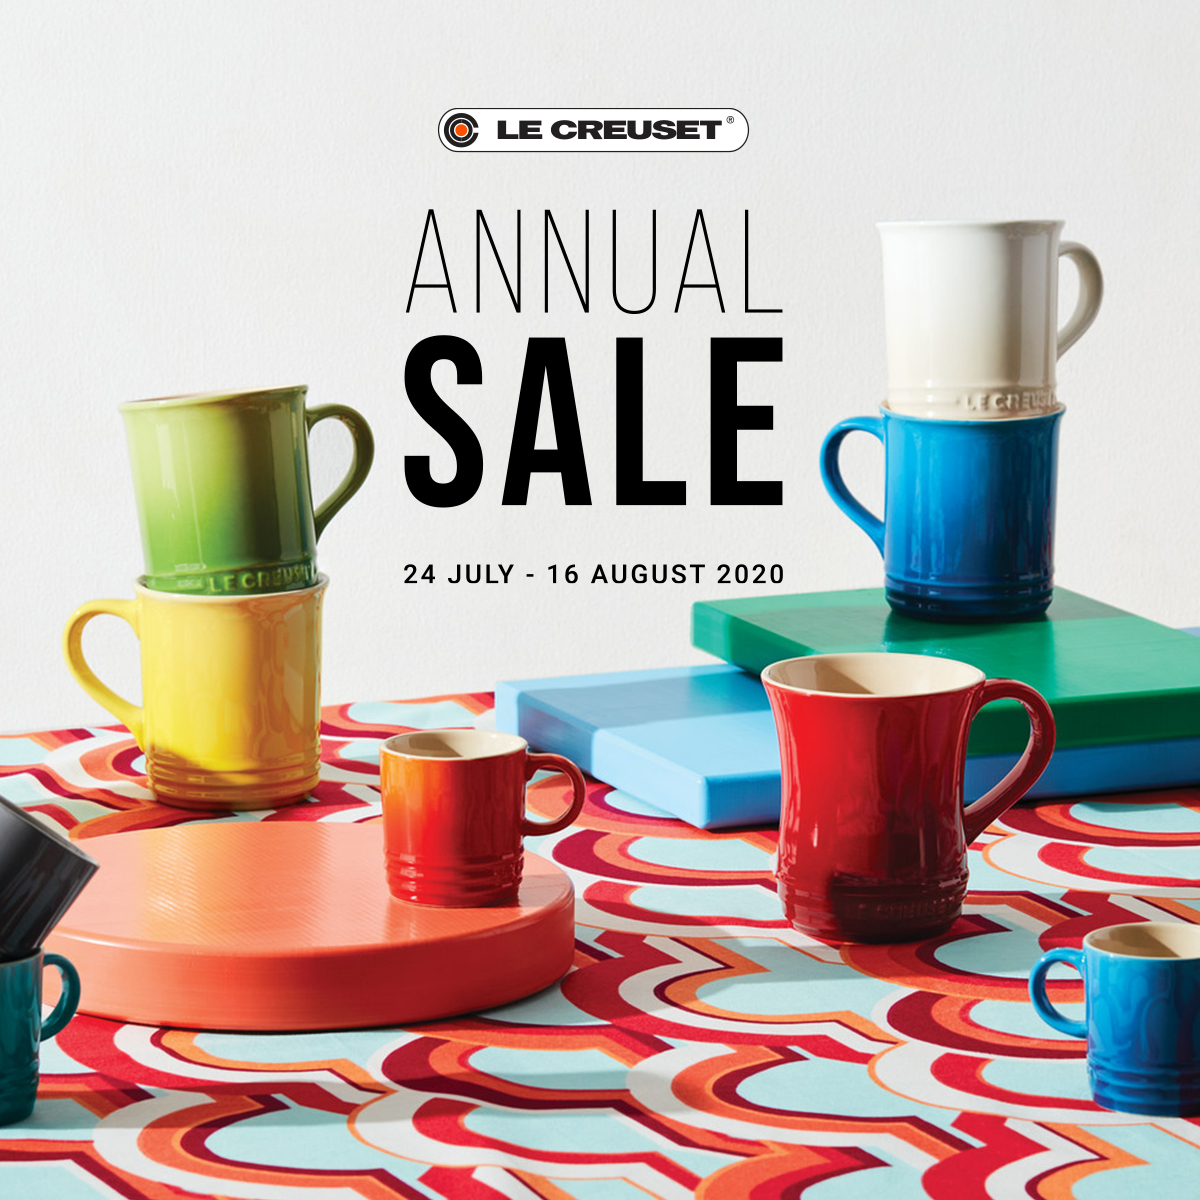 Le Creuset Shop The Le Creuset Annual Sale And Save